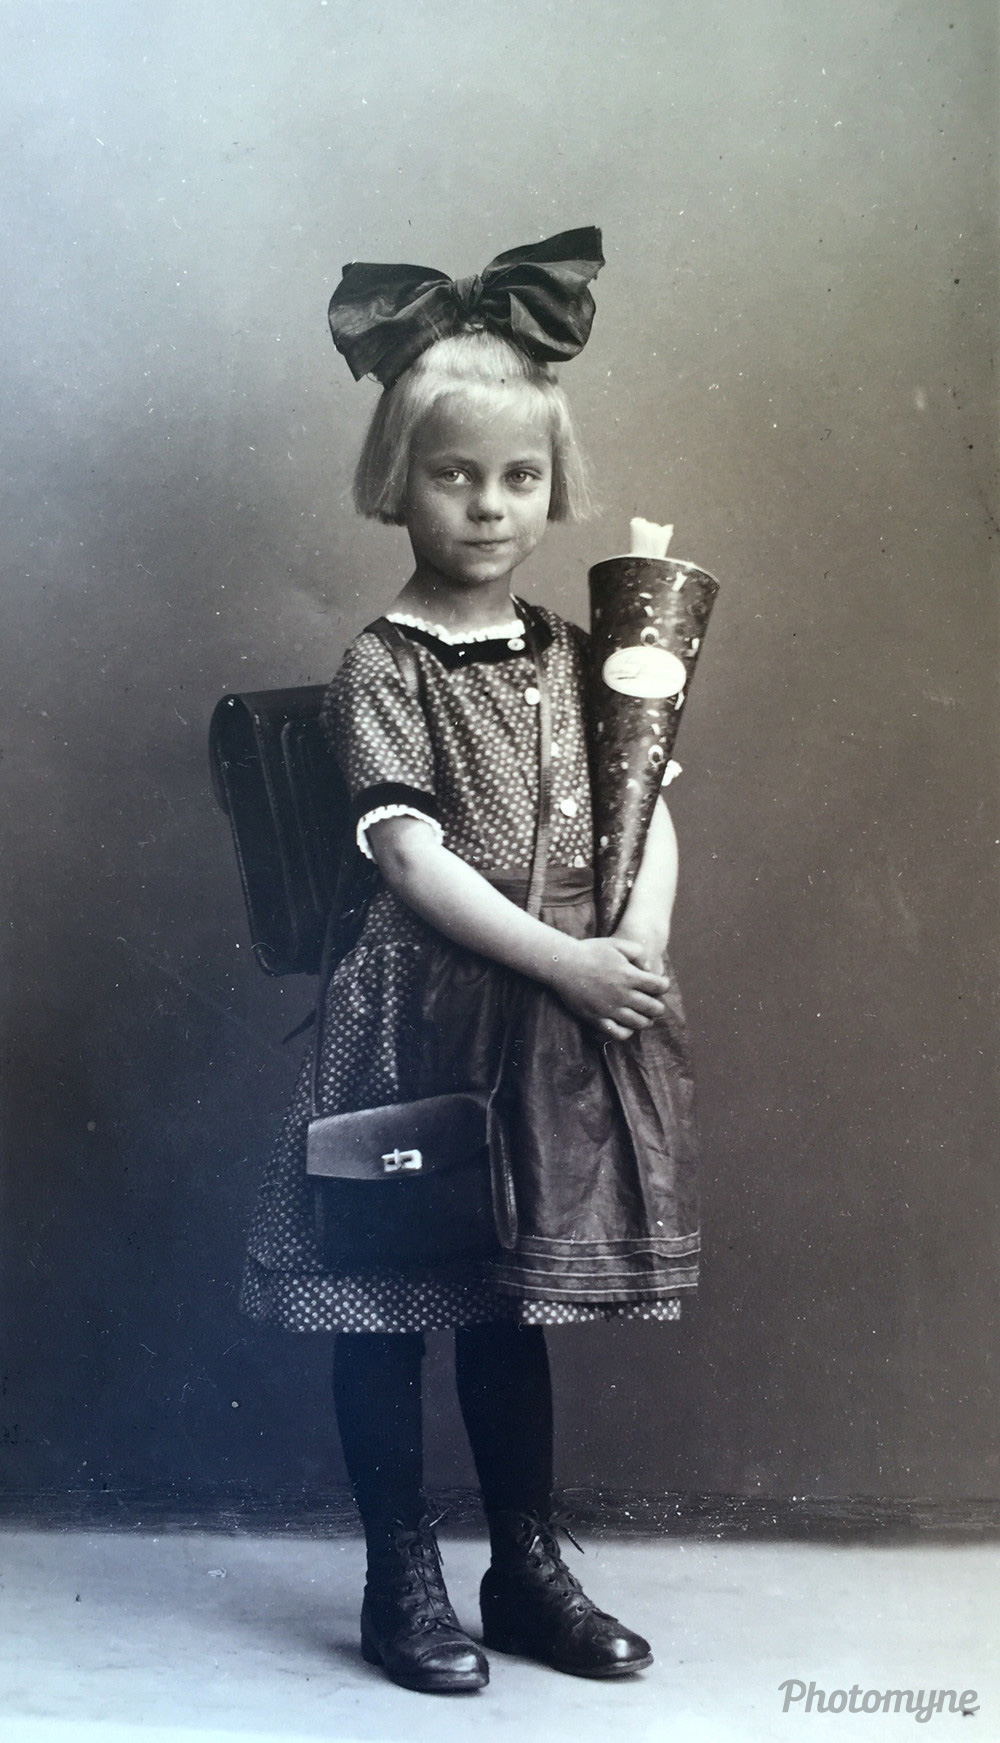 Schultag Grandmother (School Grandmother), Szczecin, Poland, 1926